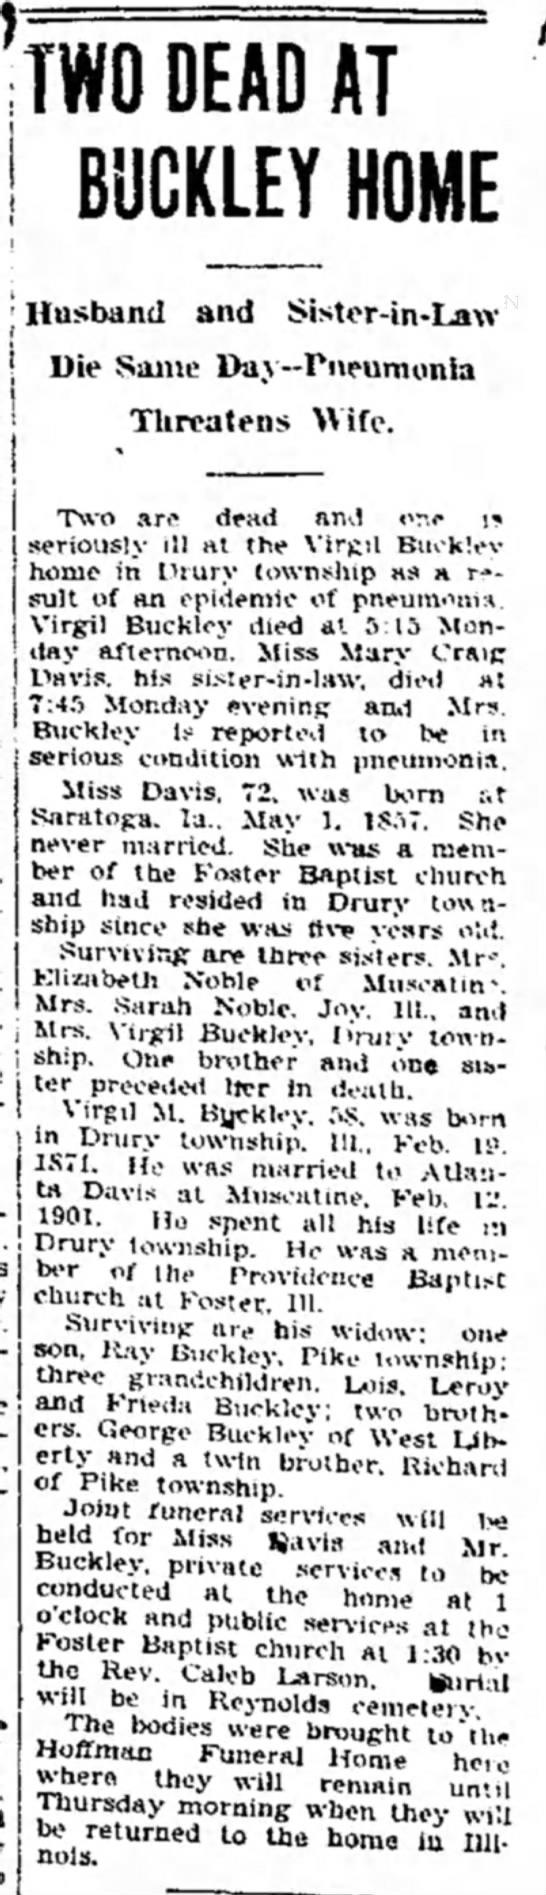 Virgil Buckley, Mary Davis obit 14 Jan 1930 - TWO DEAD AT BUCKLEY HOME Die Saine...